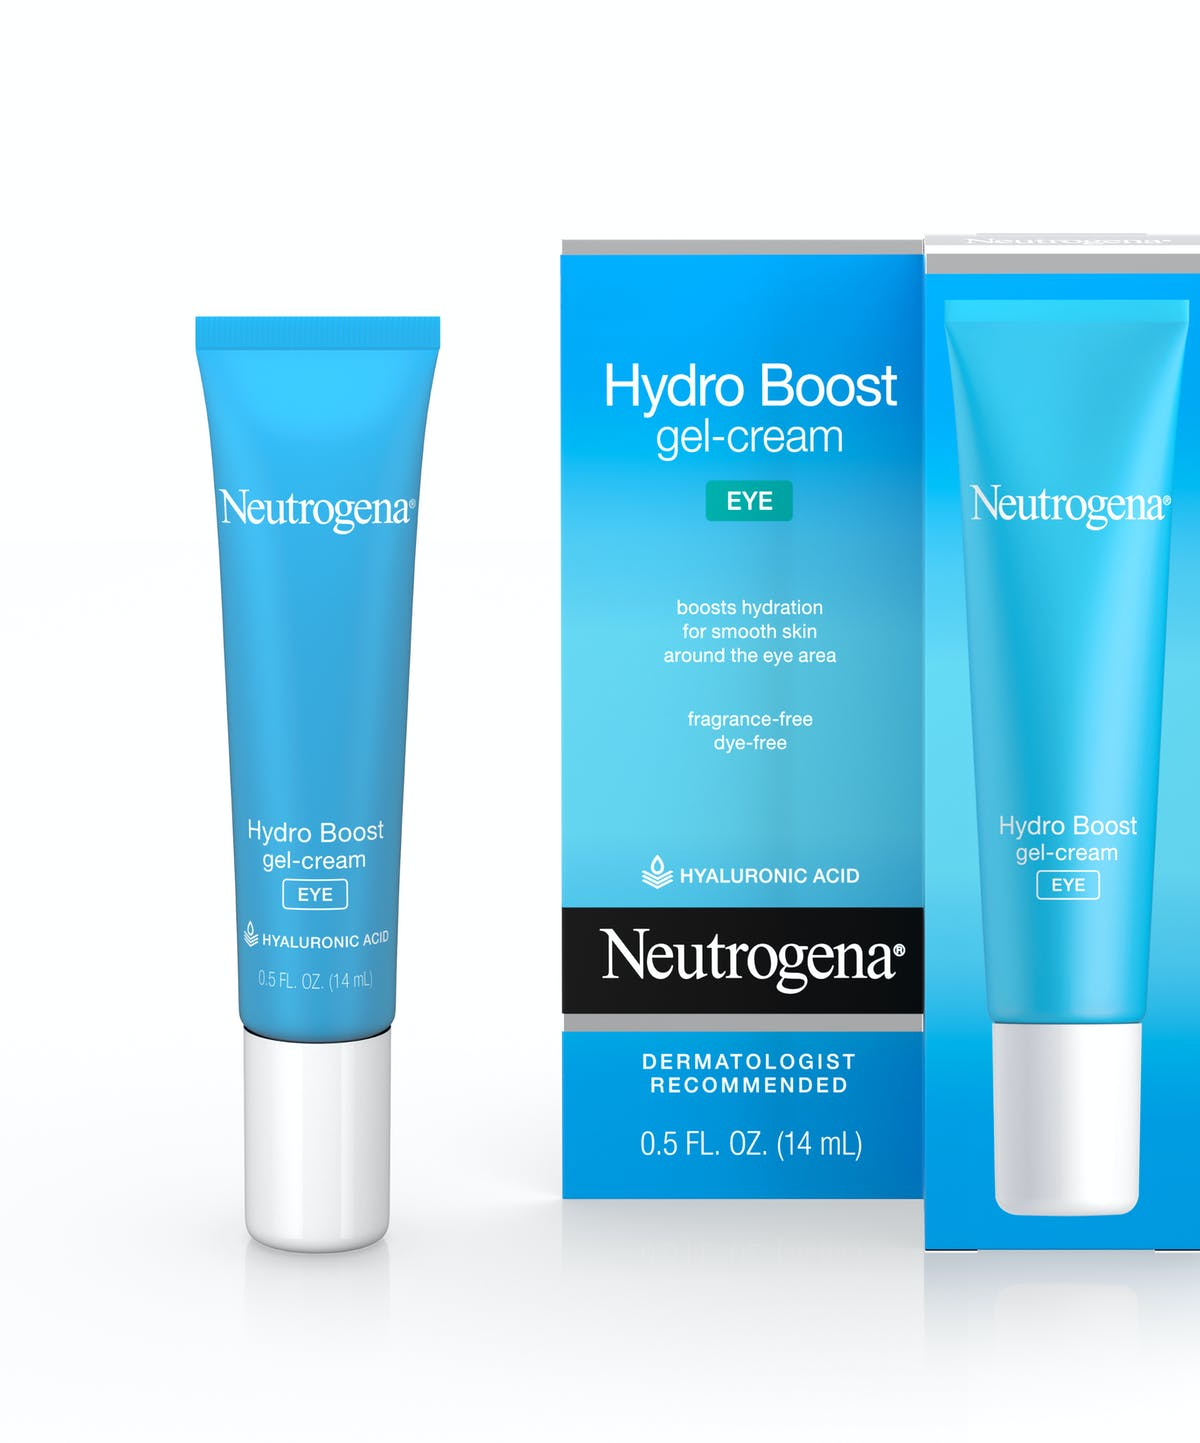 Hydro Boost Gel-Cream Eye